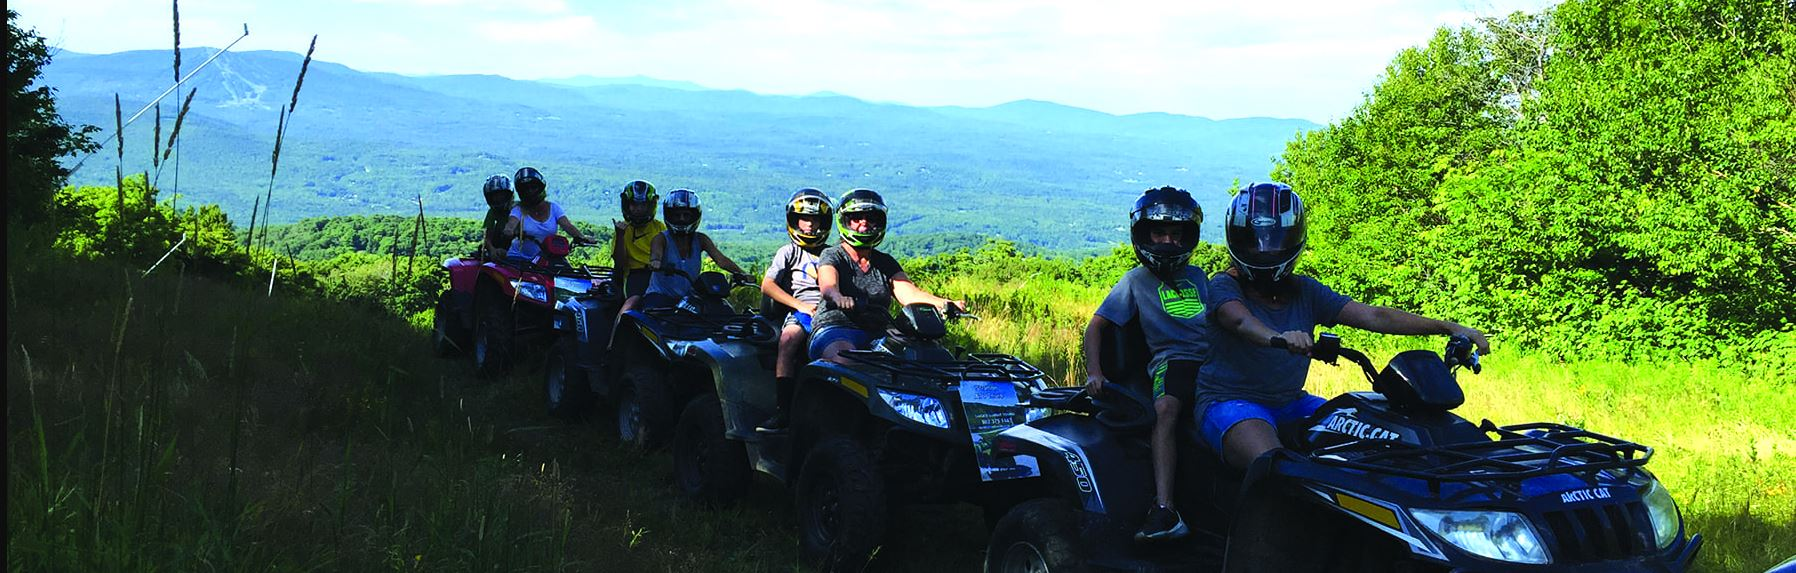 Stratton Atv Tours